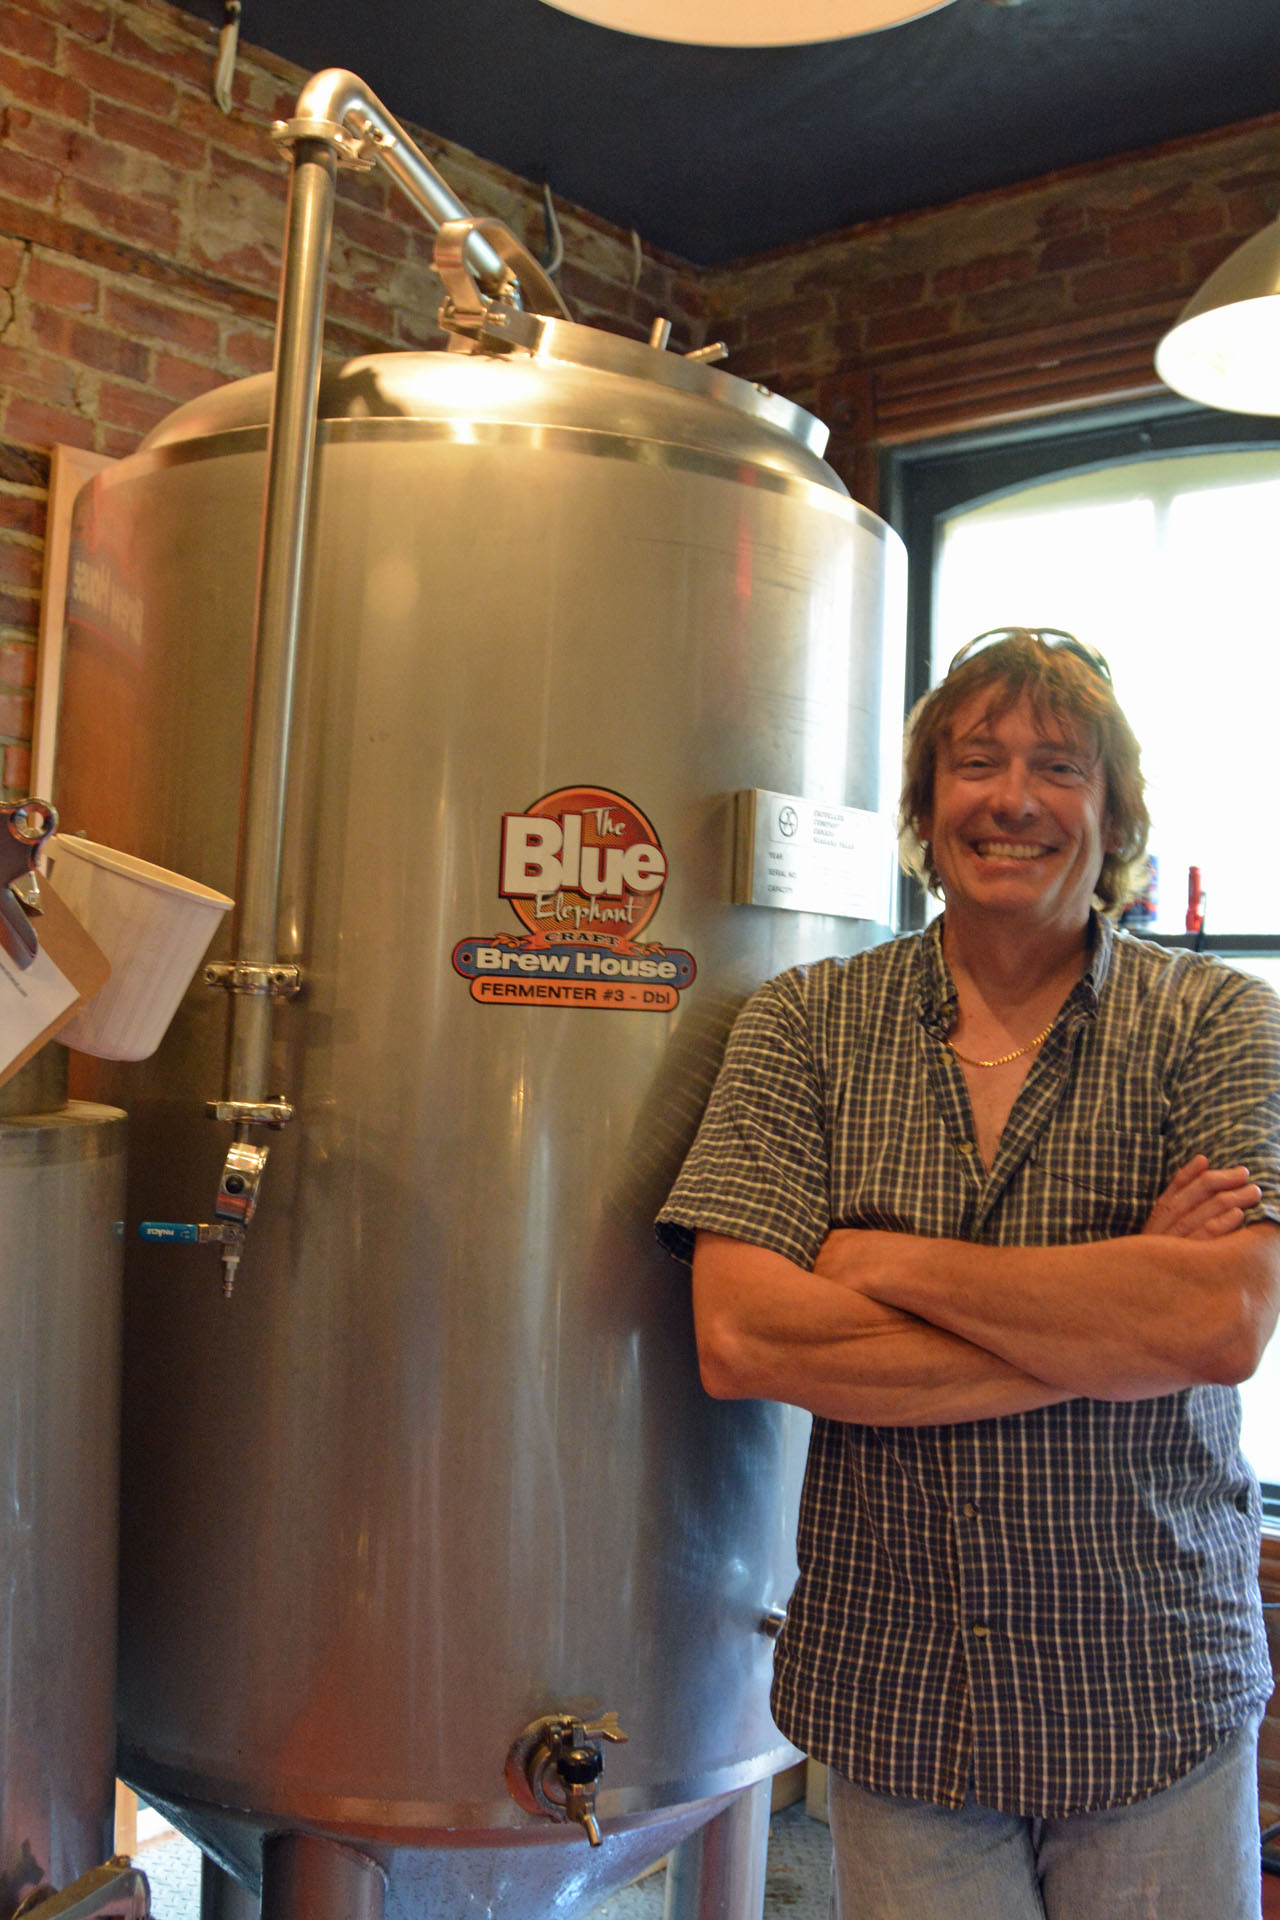 Blue Elephant's Brewmaster, James Grant